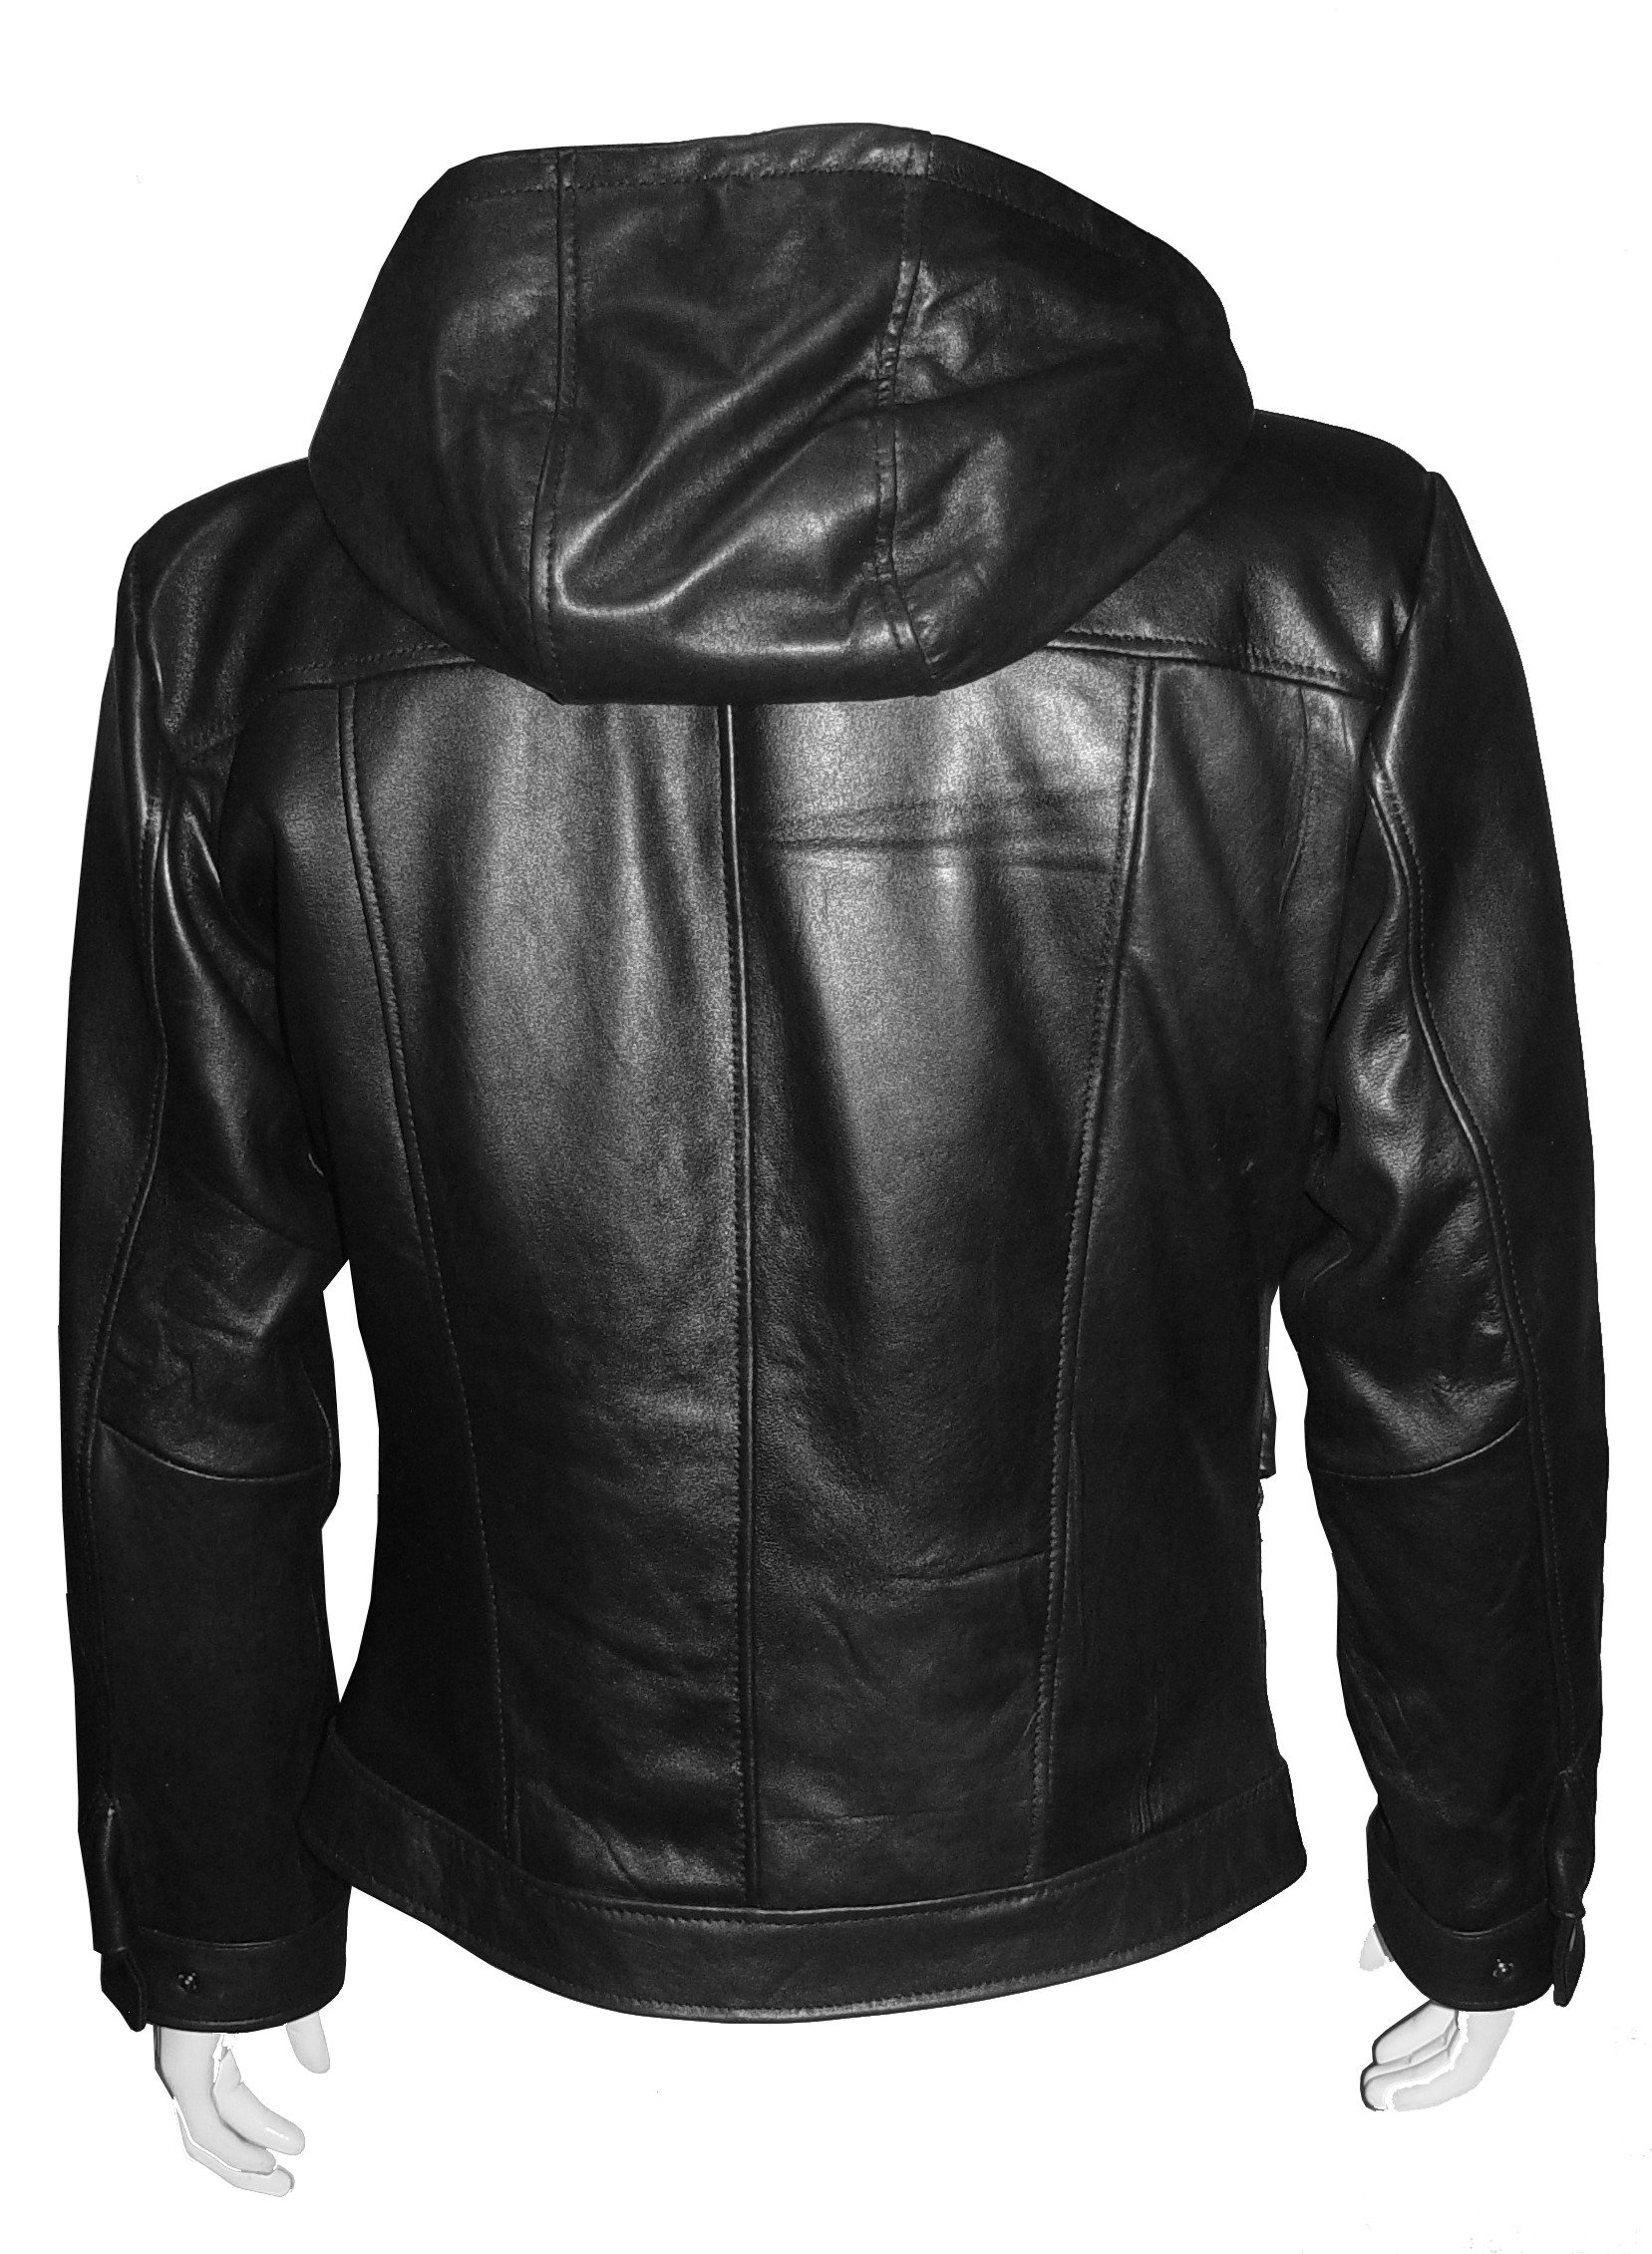 Nettailor Tall Big Man 1085 BIG TALL Size 4 Season Leather Jacket Zip Out by NETTAILOR (Image #6)